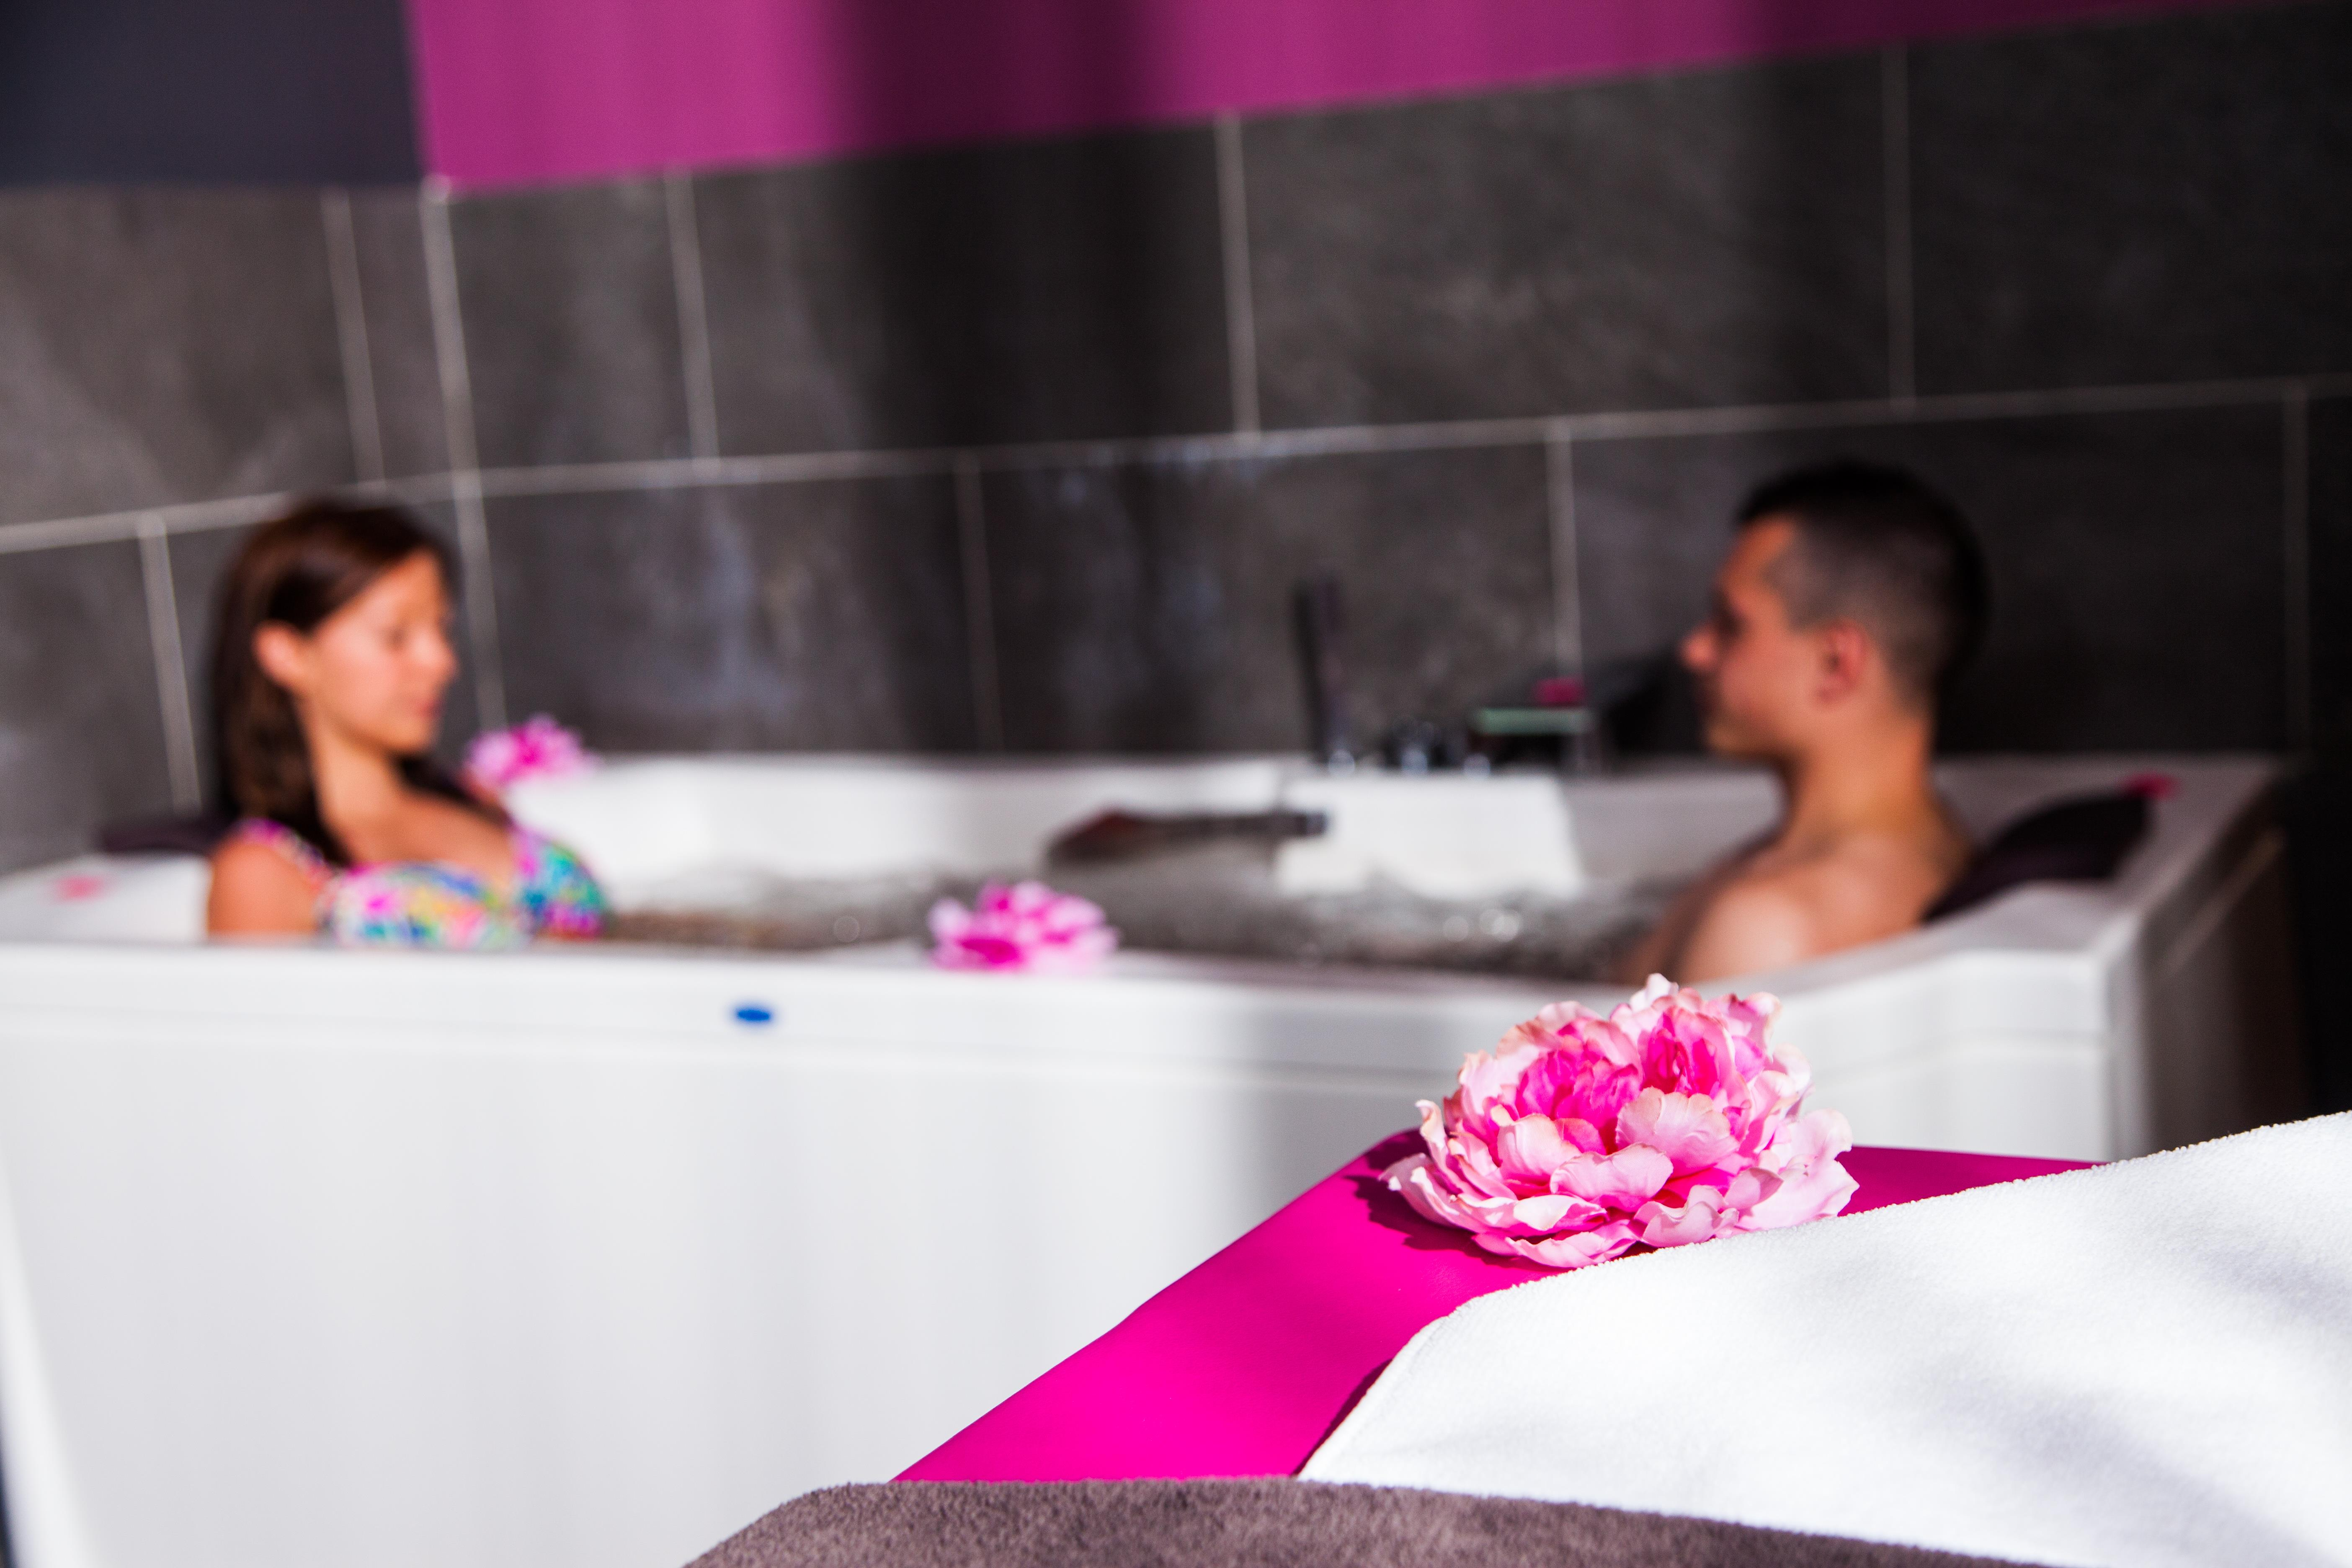 SPA Area Recreation Couples Holiday Relax